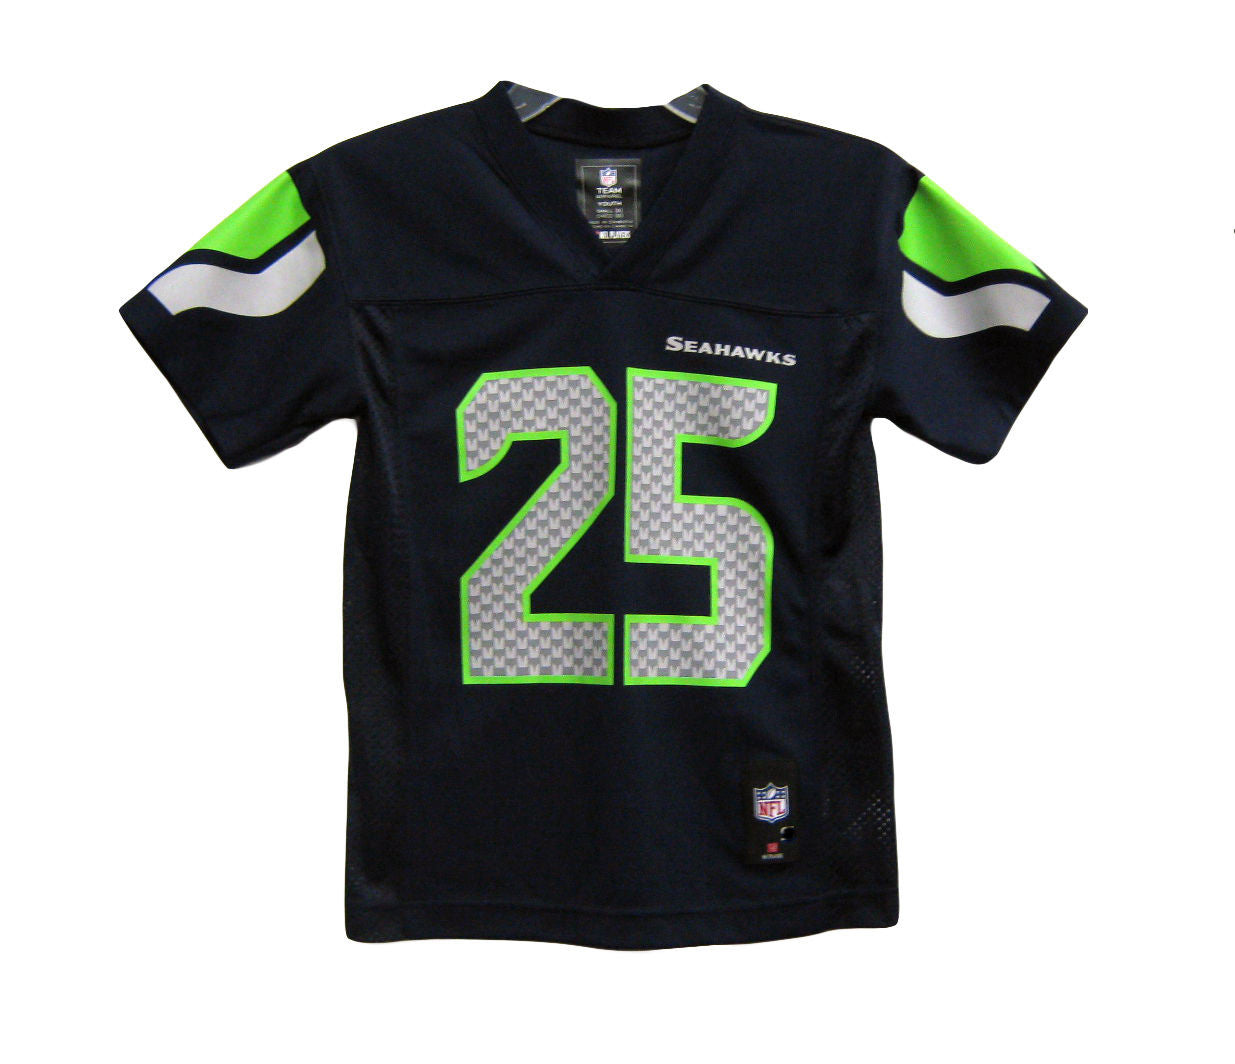 order richard sherman 25 seattle seahawks jersey 346b8 7447e 5349739ef